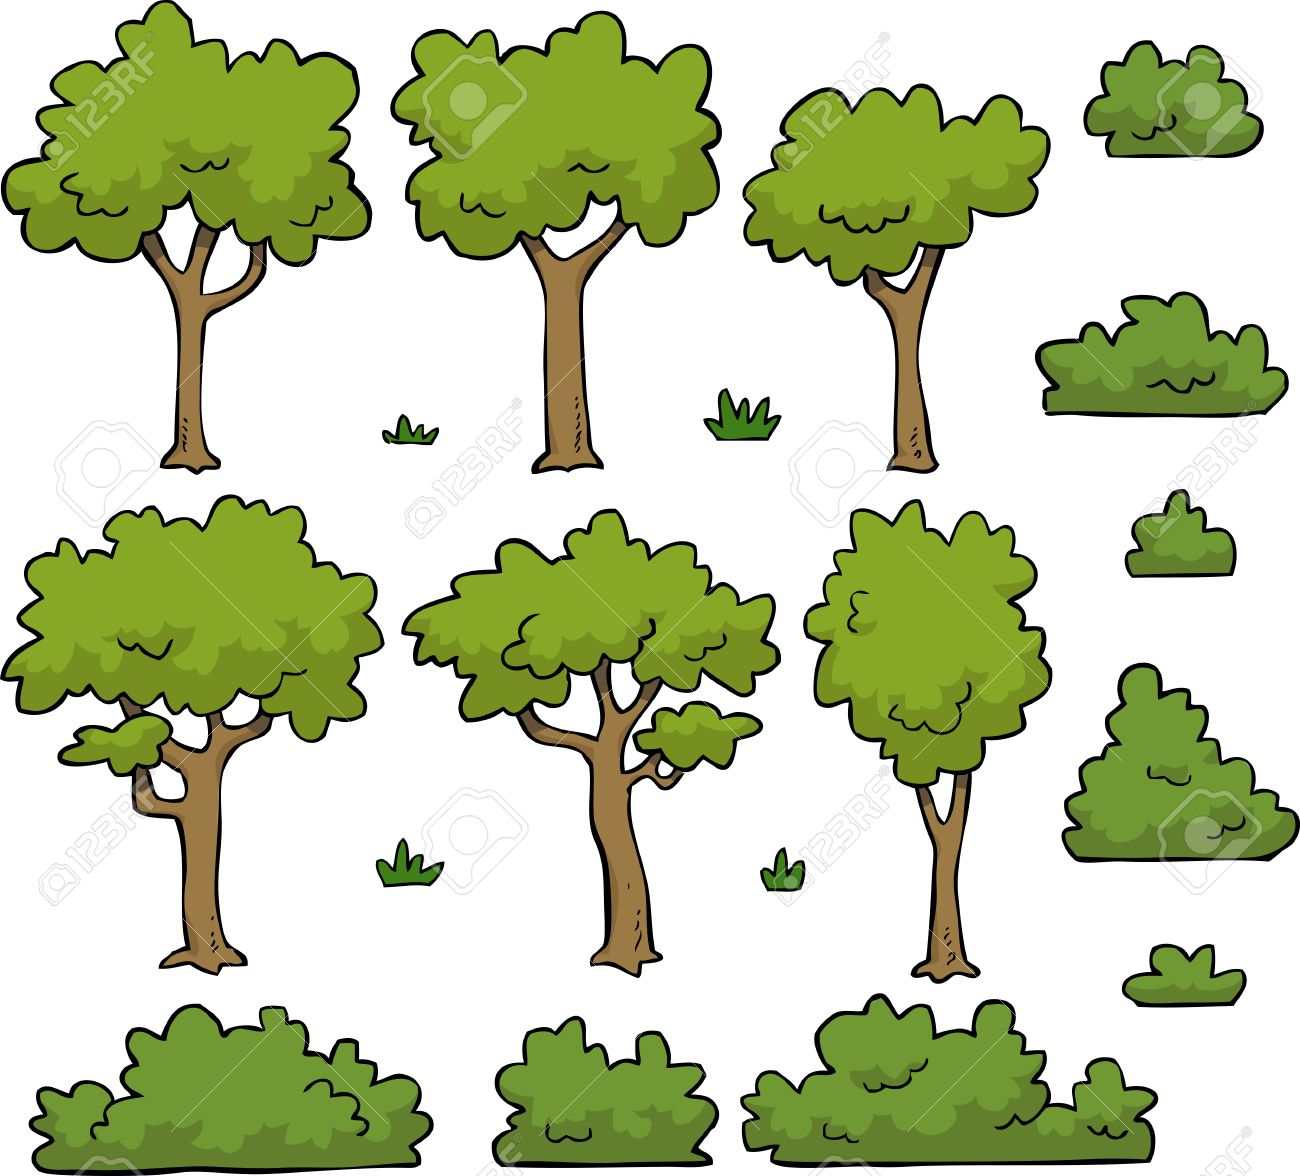 Cartoon doodle set trees and bushes vector illustration - 52987681